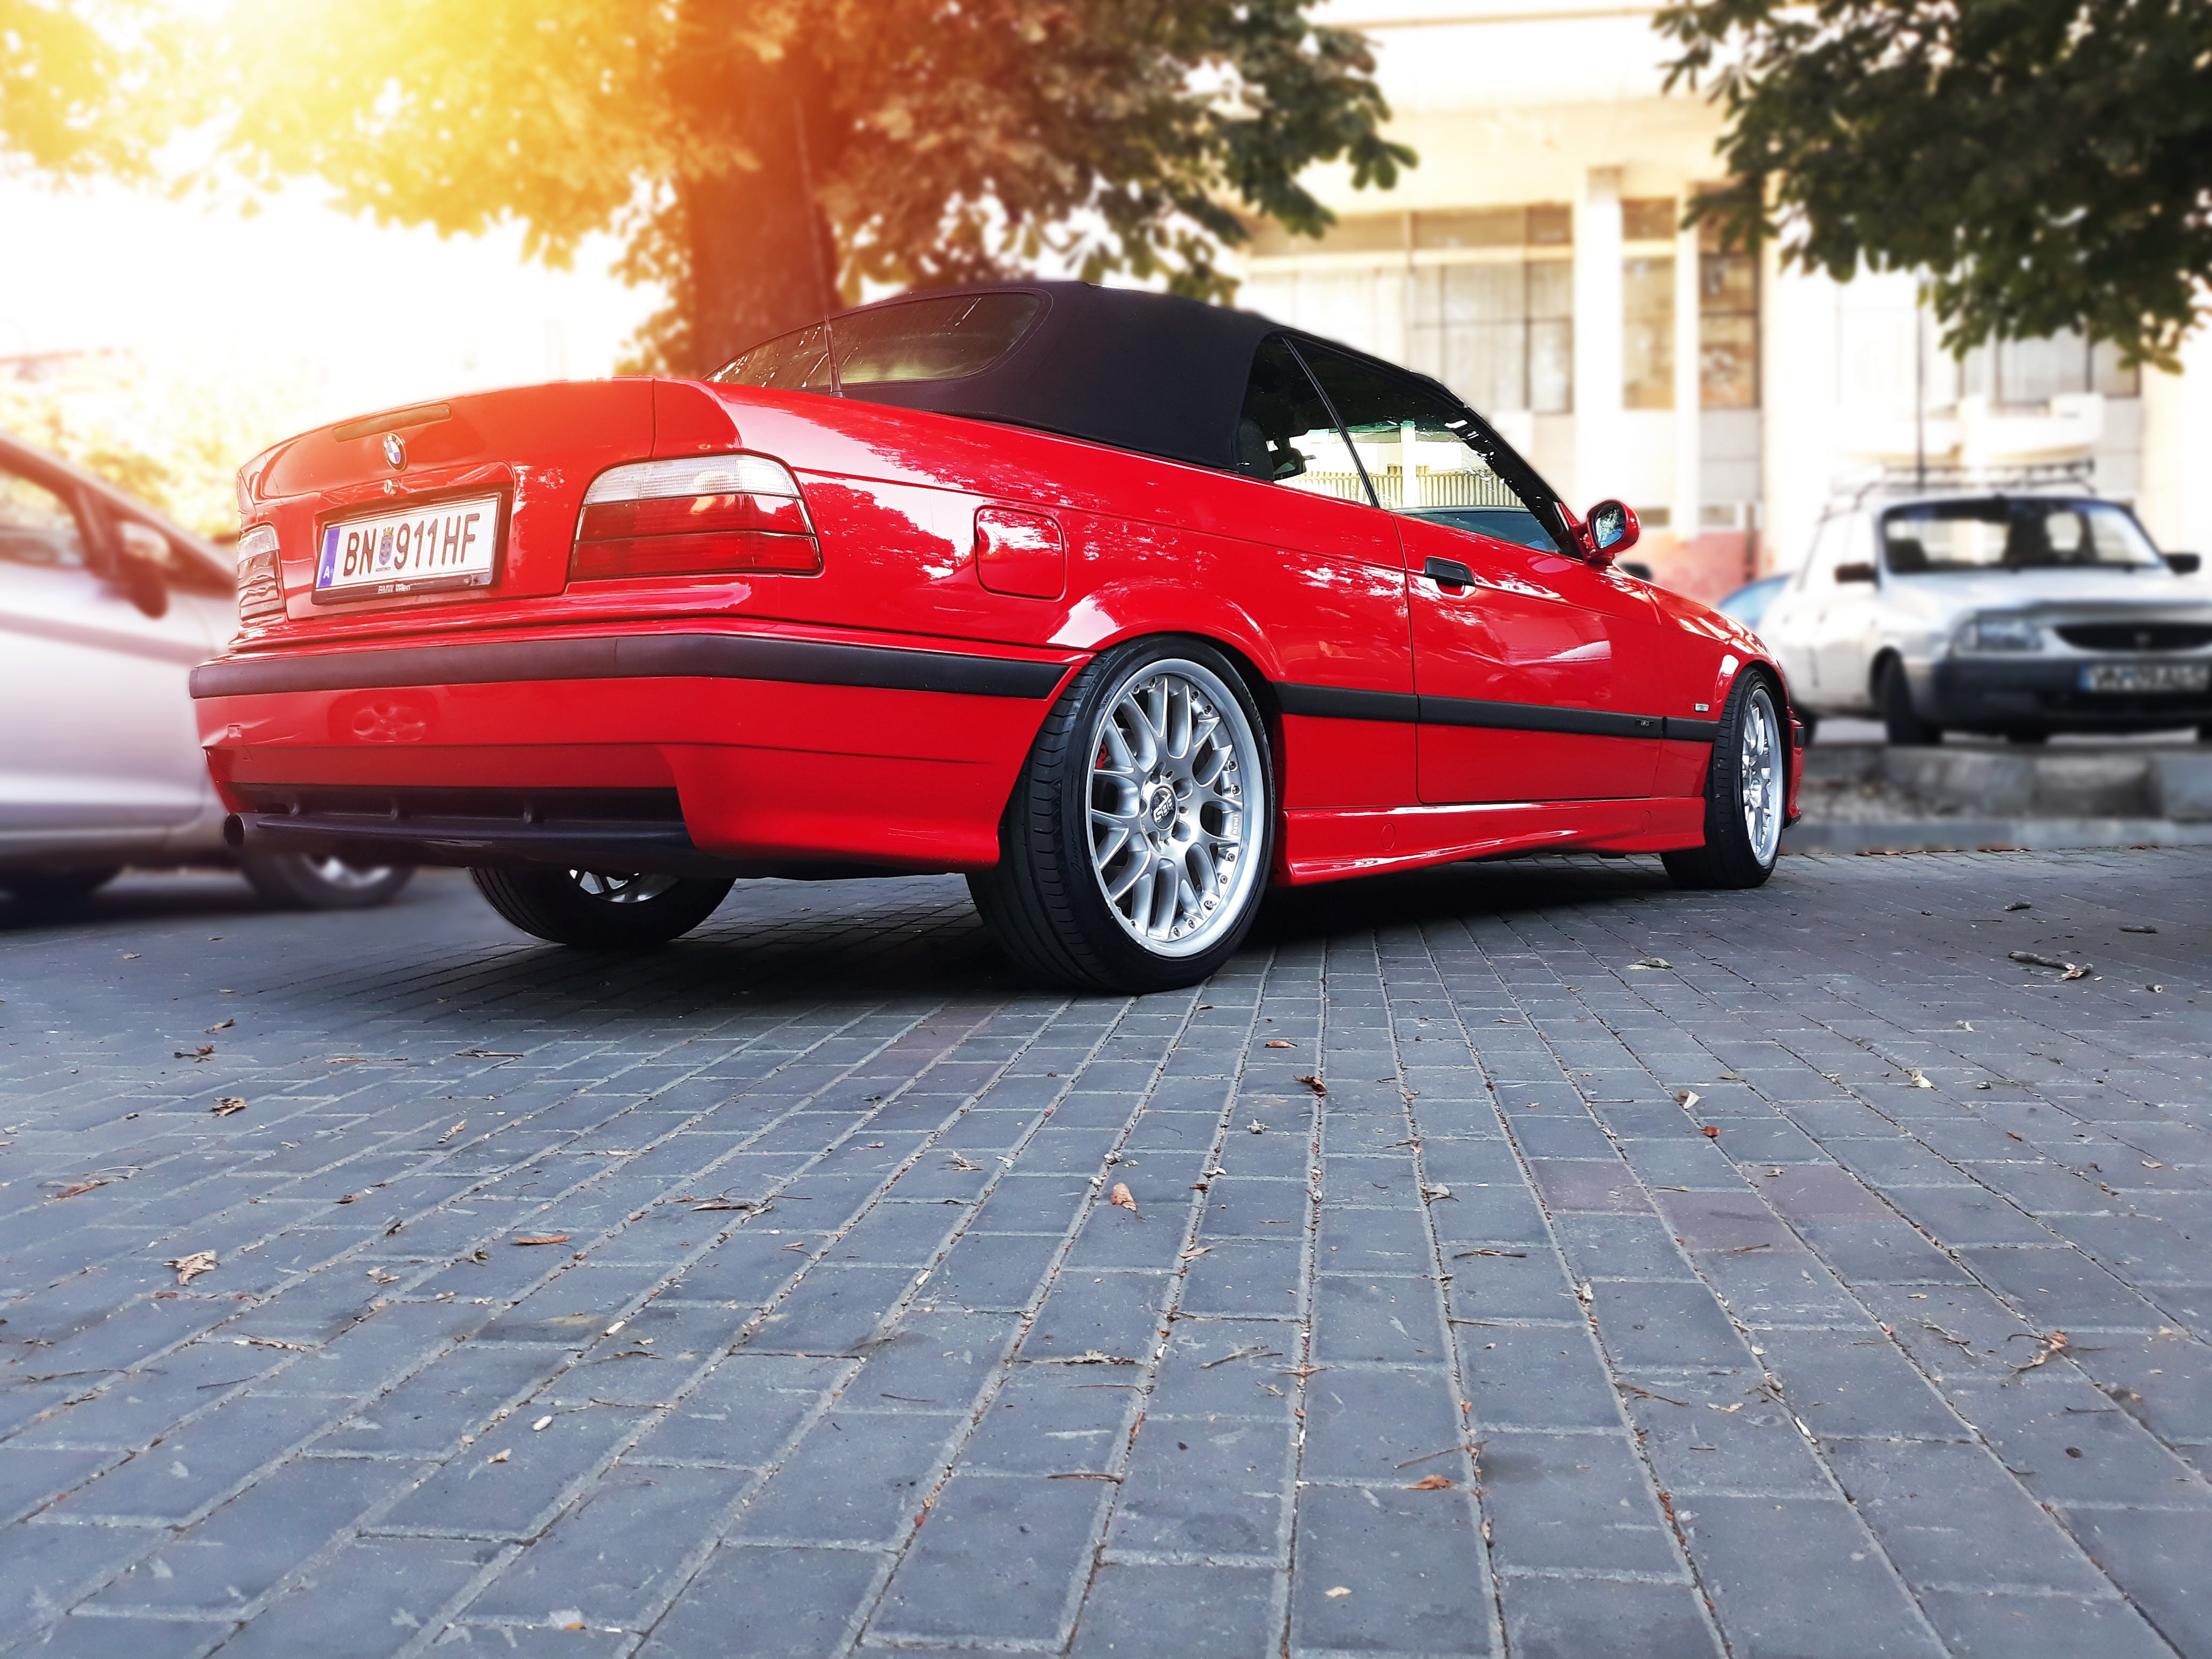 Red Bmw Coupe Parked on Road